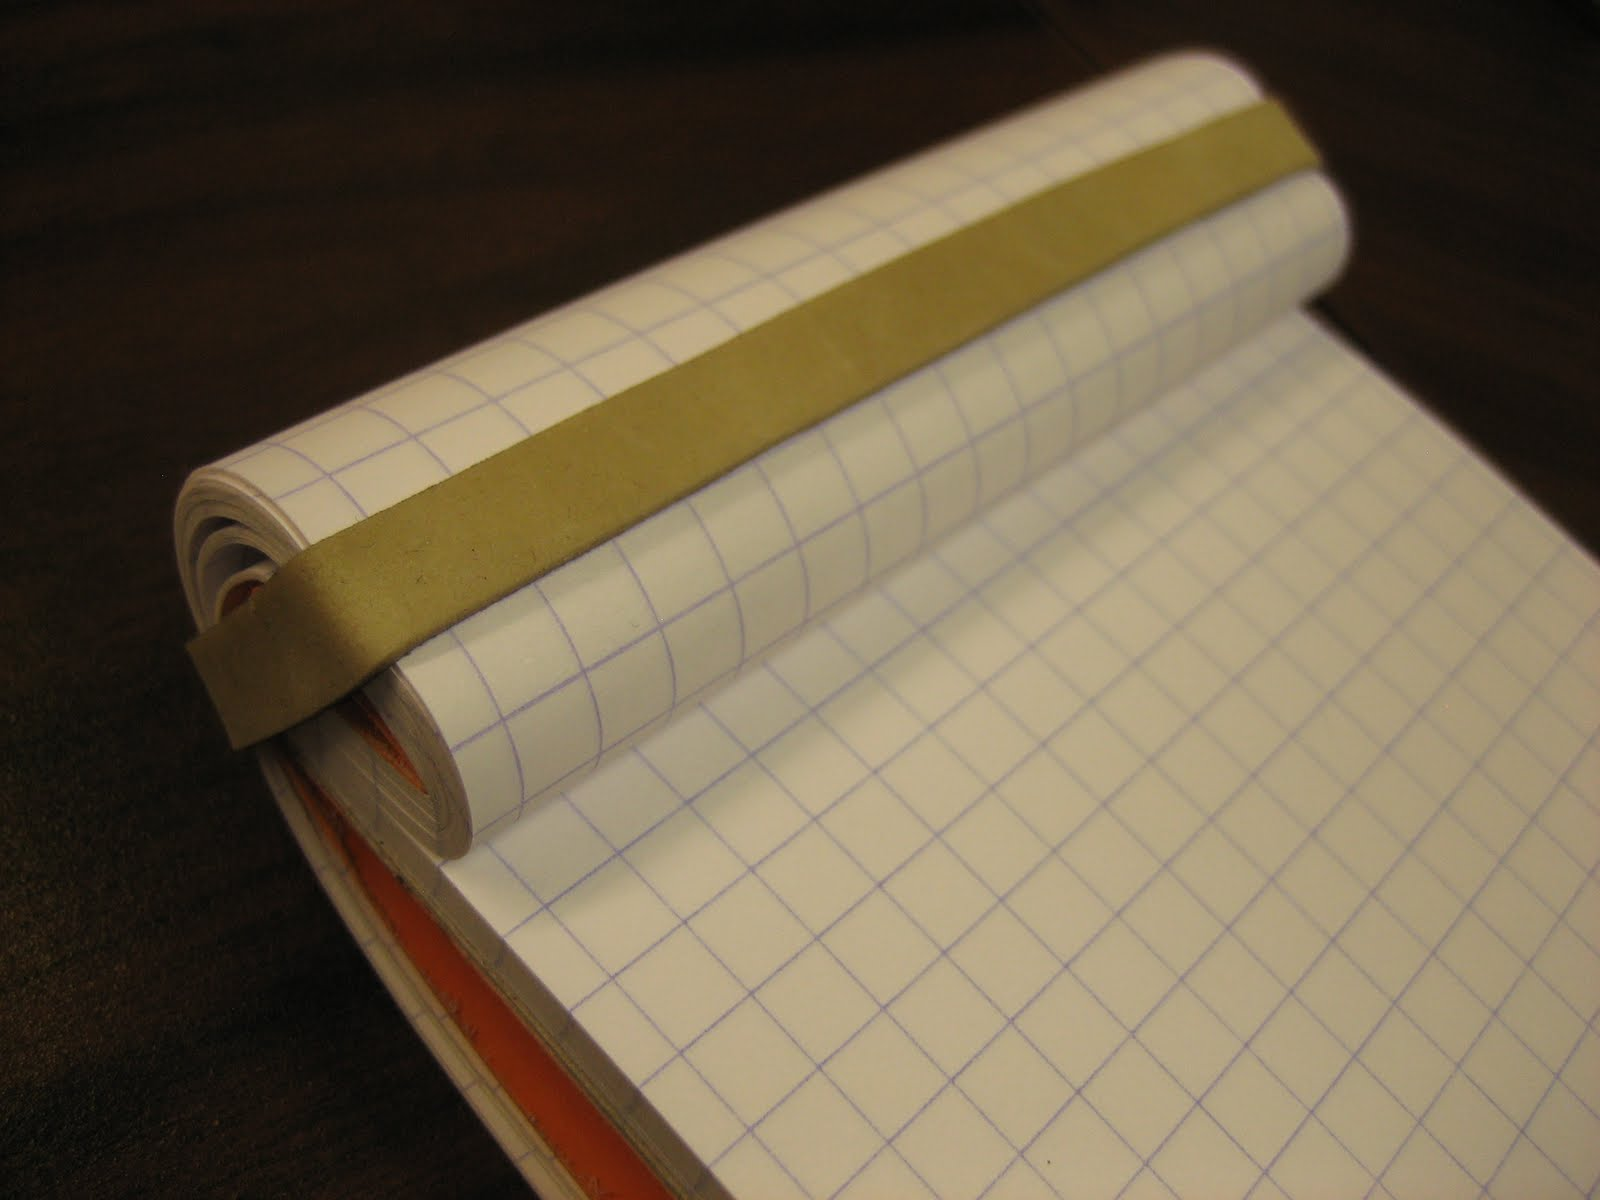 The Penny Writer.: Rhodia Bloc No 12 Paper Pad Review